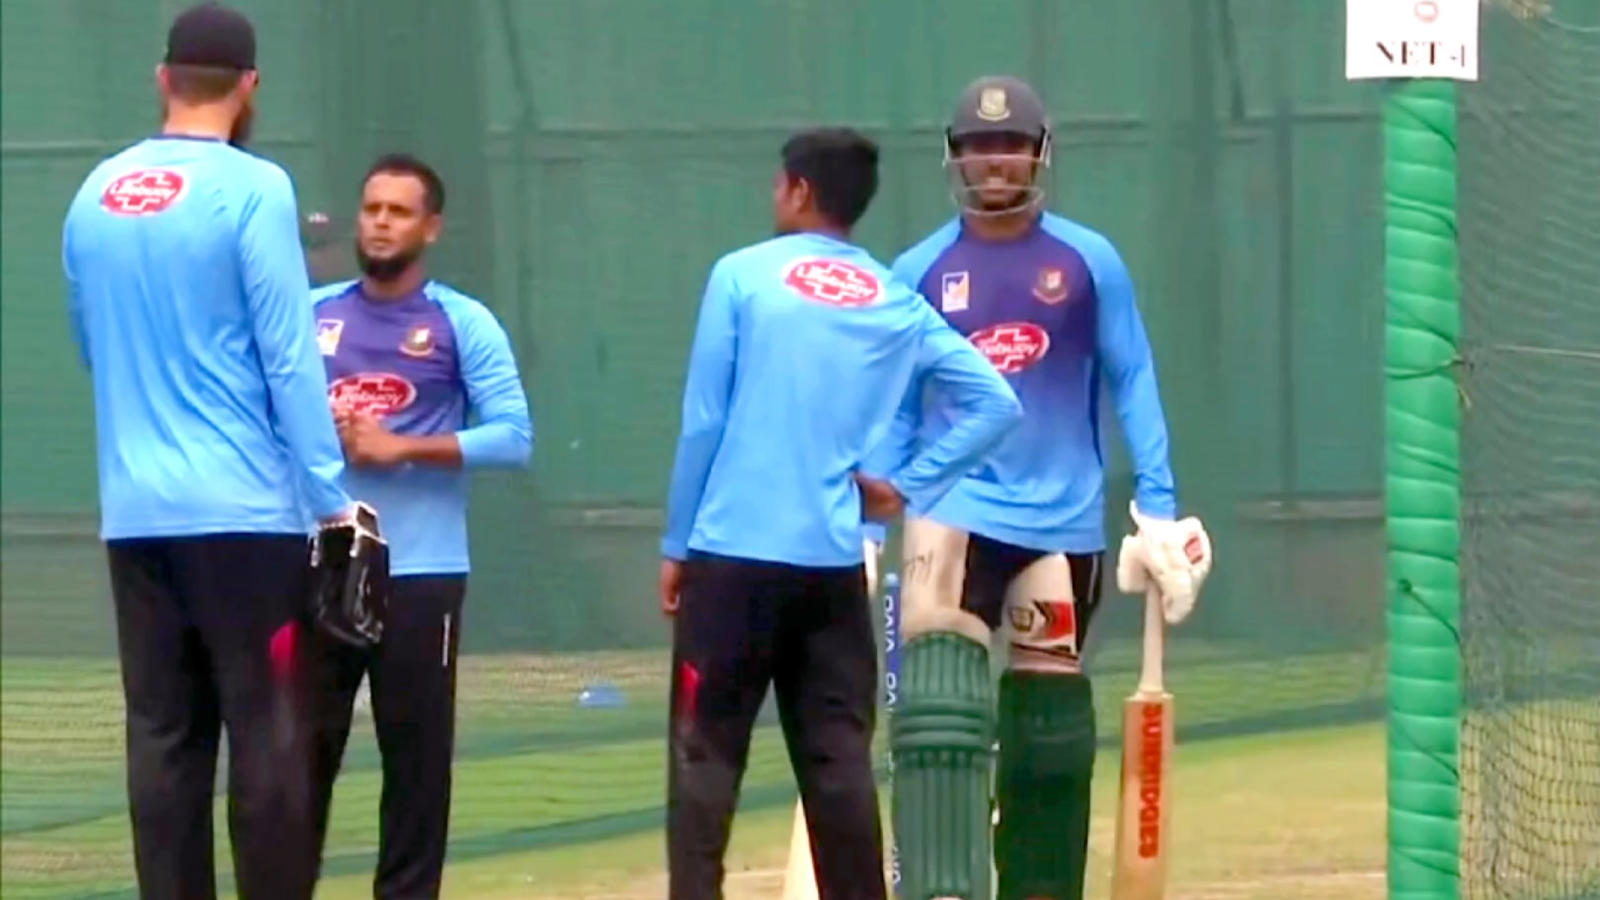 india-vs-bangladesh-1st-t20i-visiting-team-brushes-up-their-skills-ahead-of-match